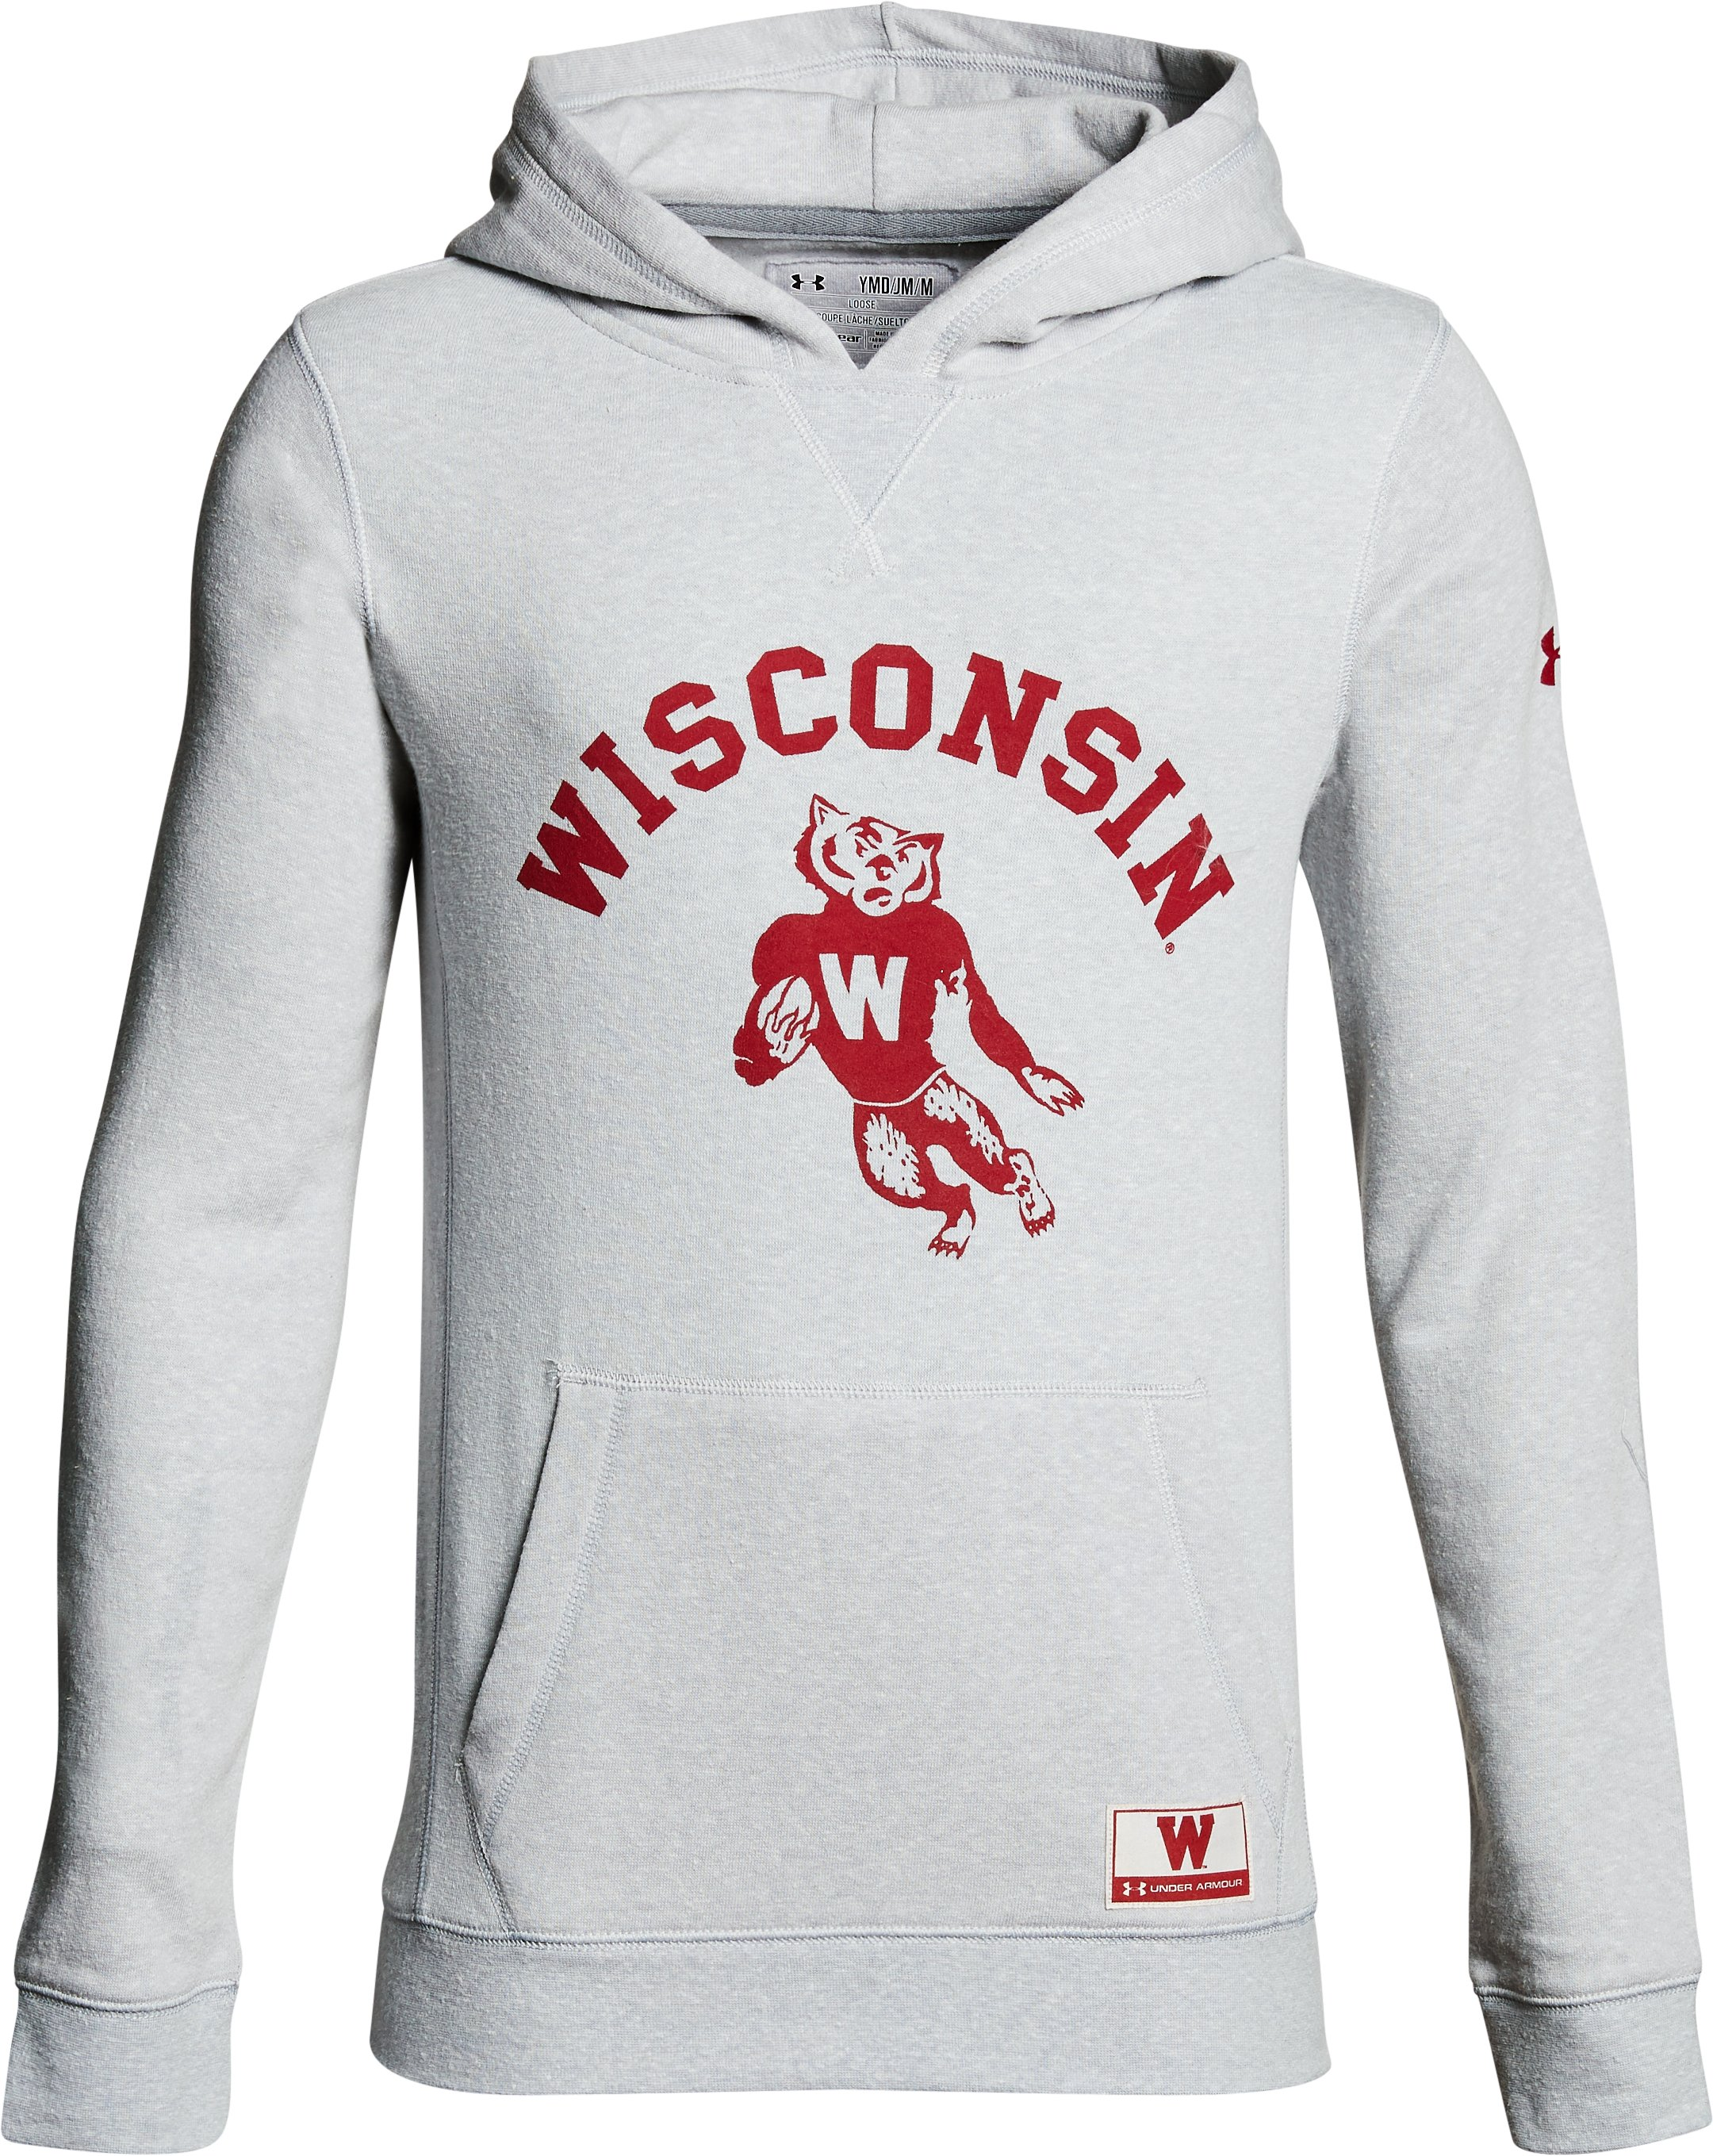 Boy's Wisconsin Iconic Hoodie, Gray, undefined